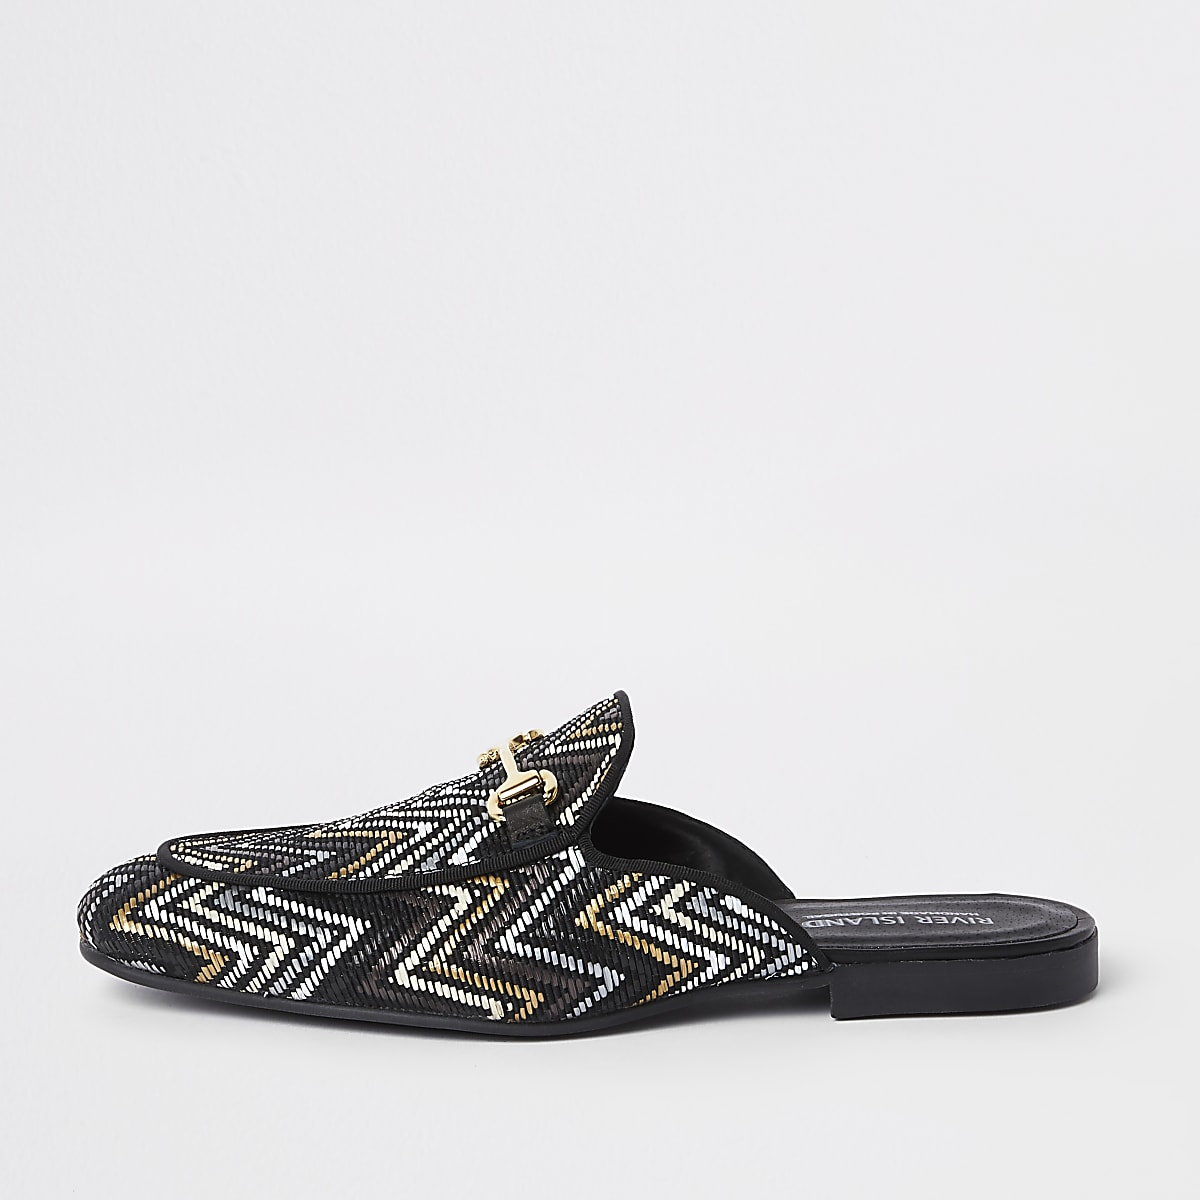 Black and gold woven backless loafer